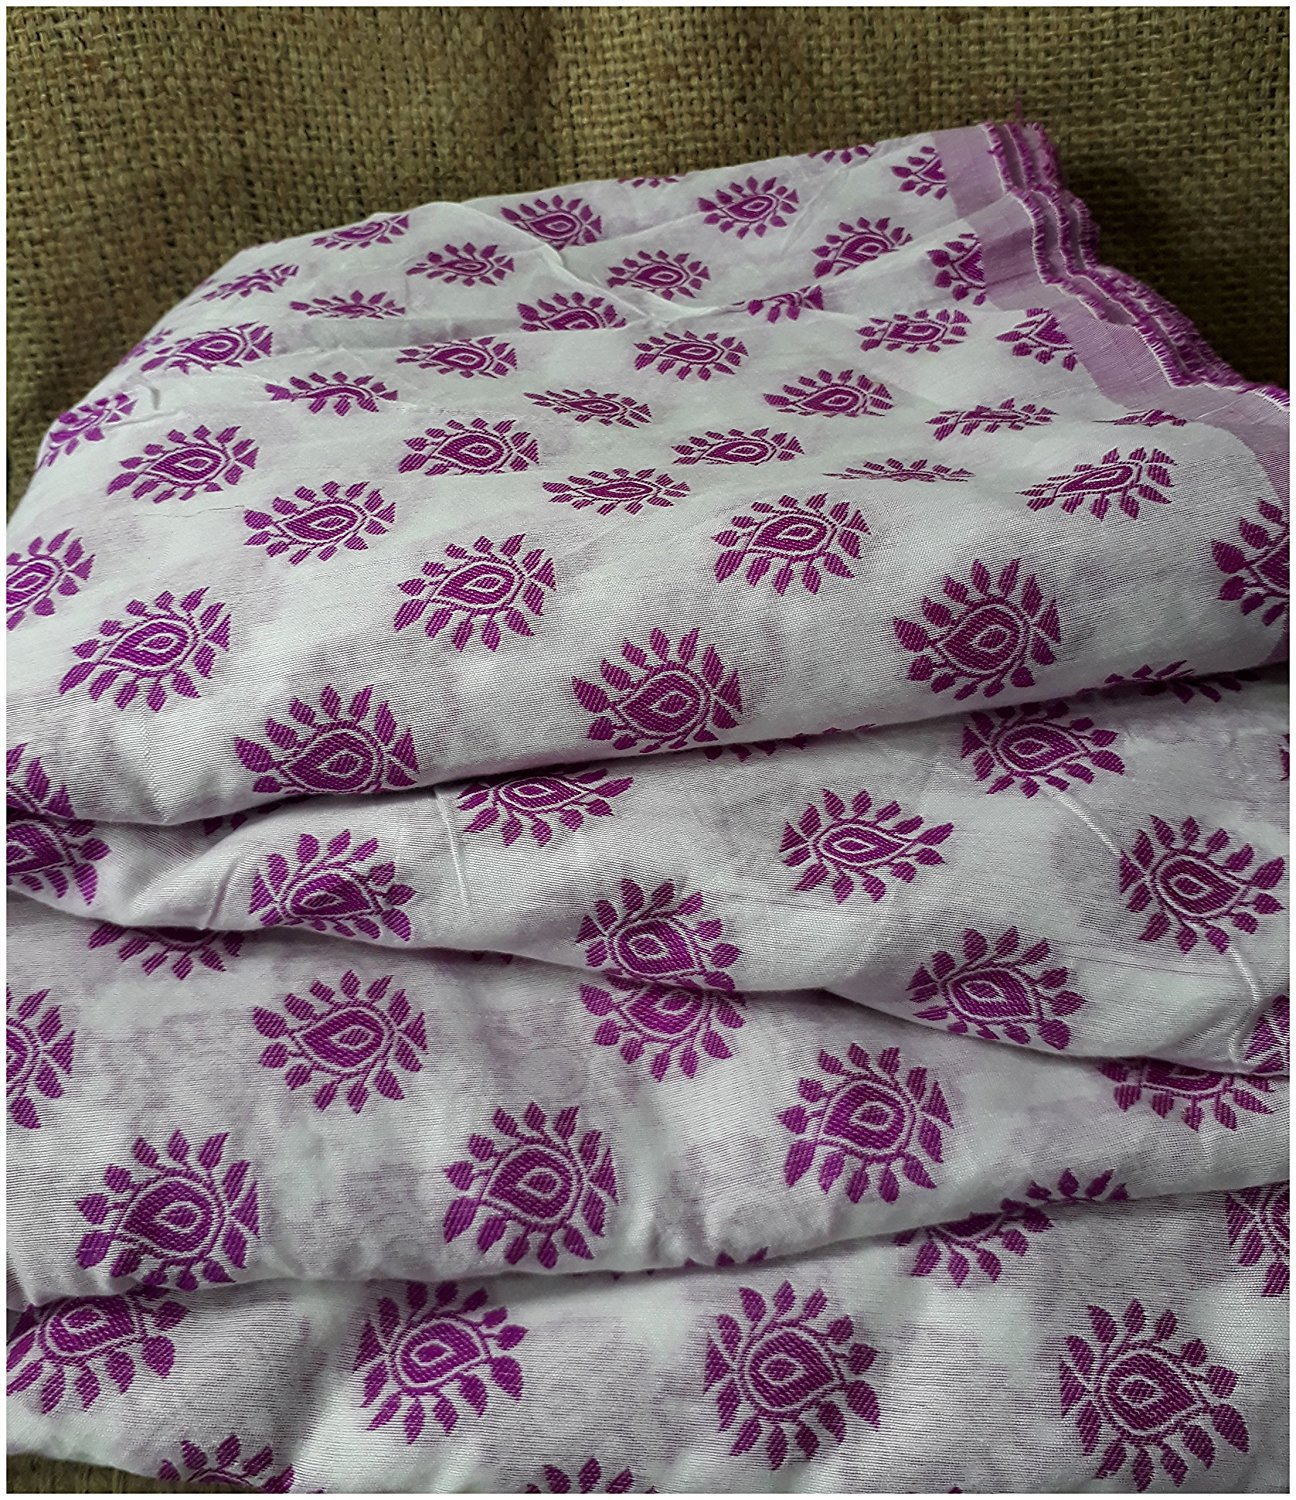 embroidery cloth materials embroidery beads online Cotton Off White, Pink 48 inches Wide 1781